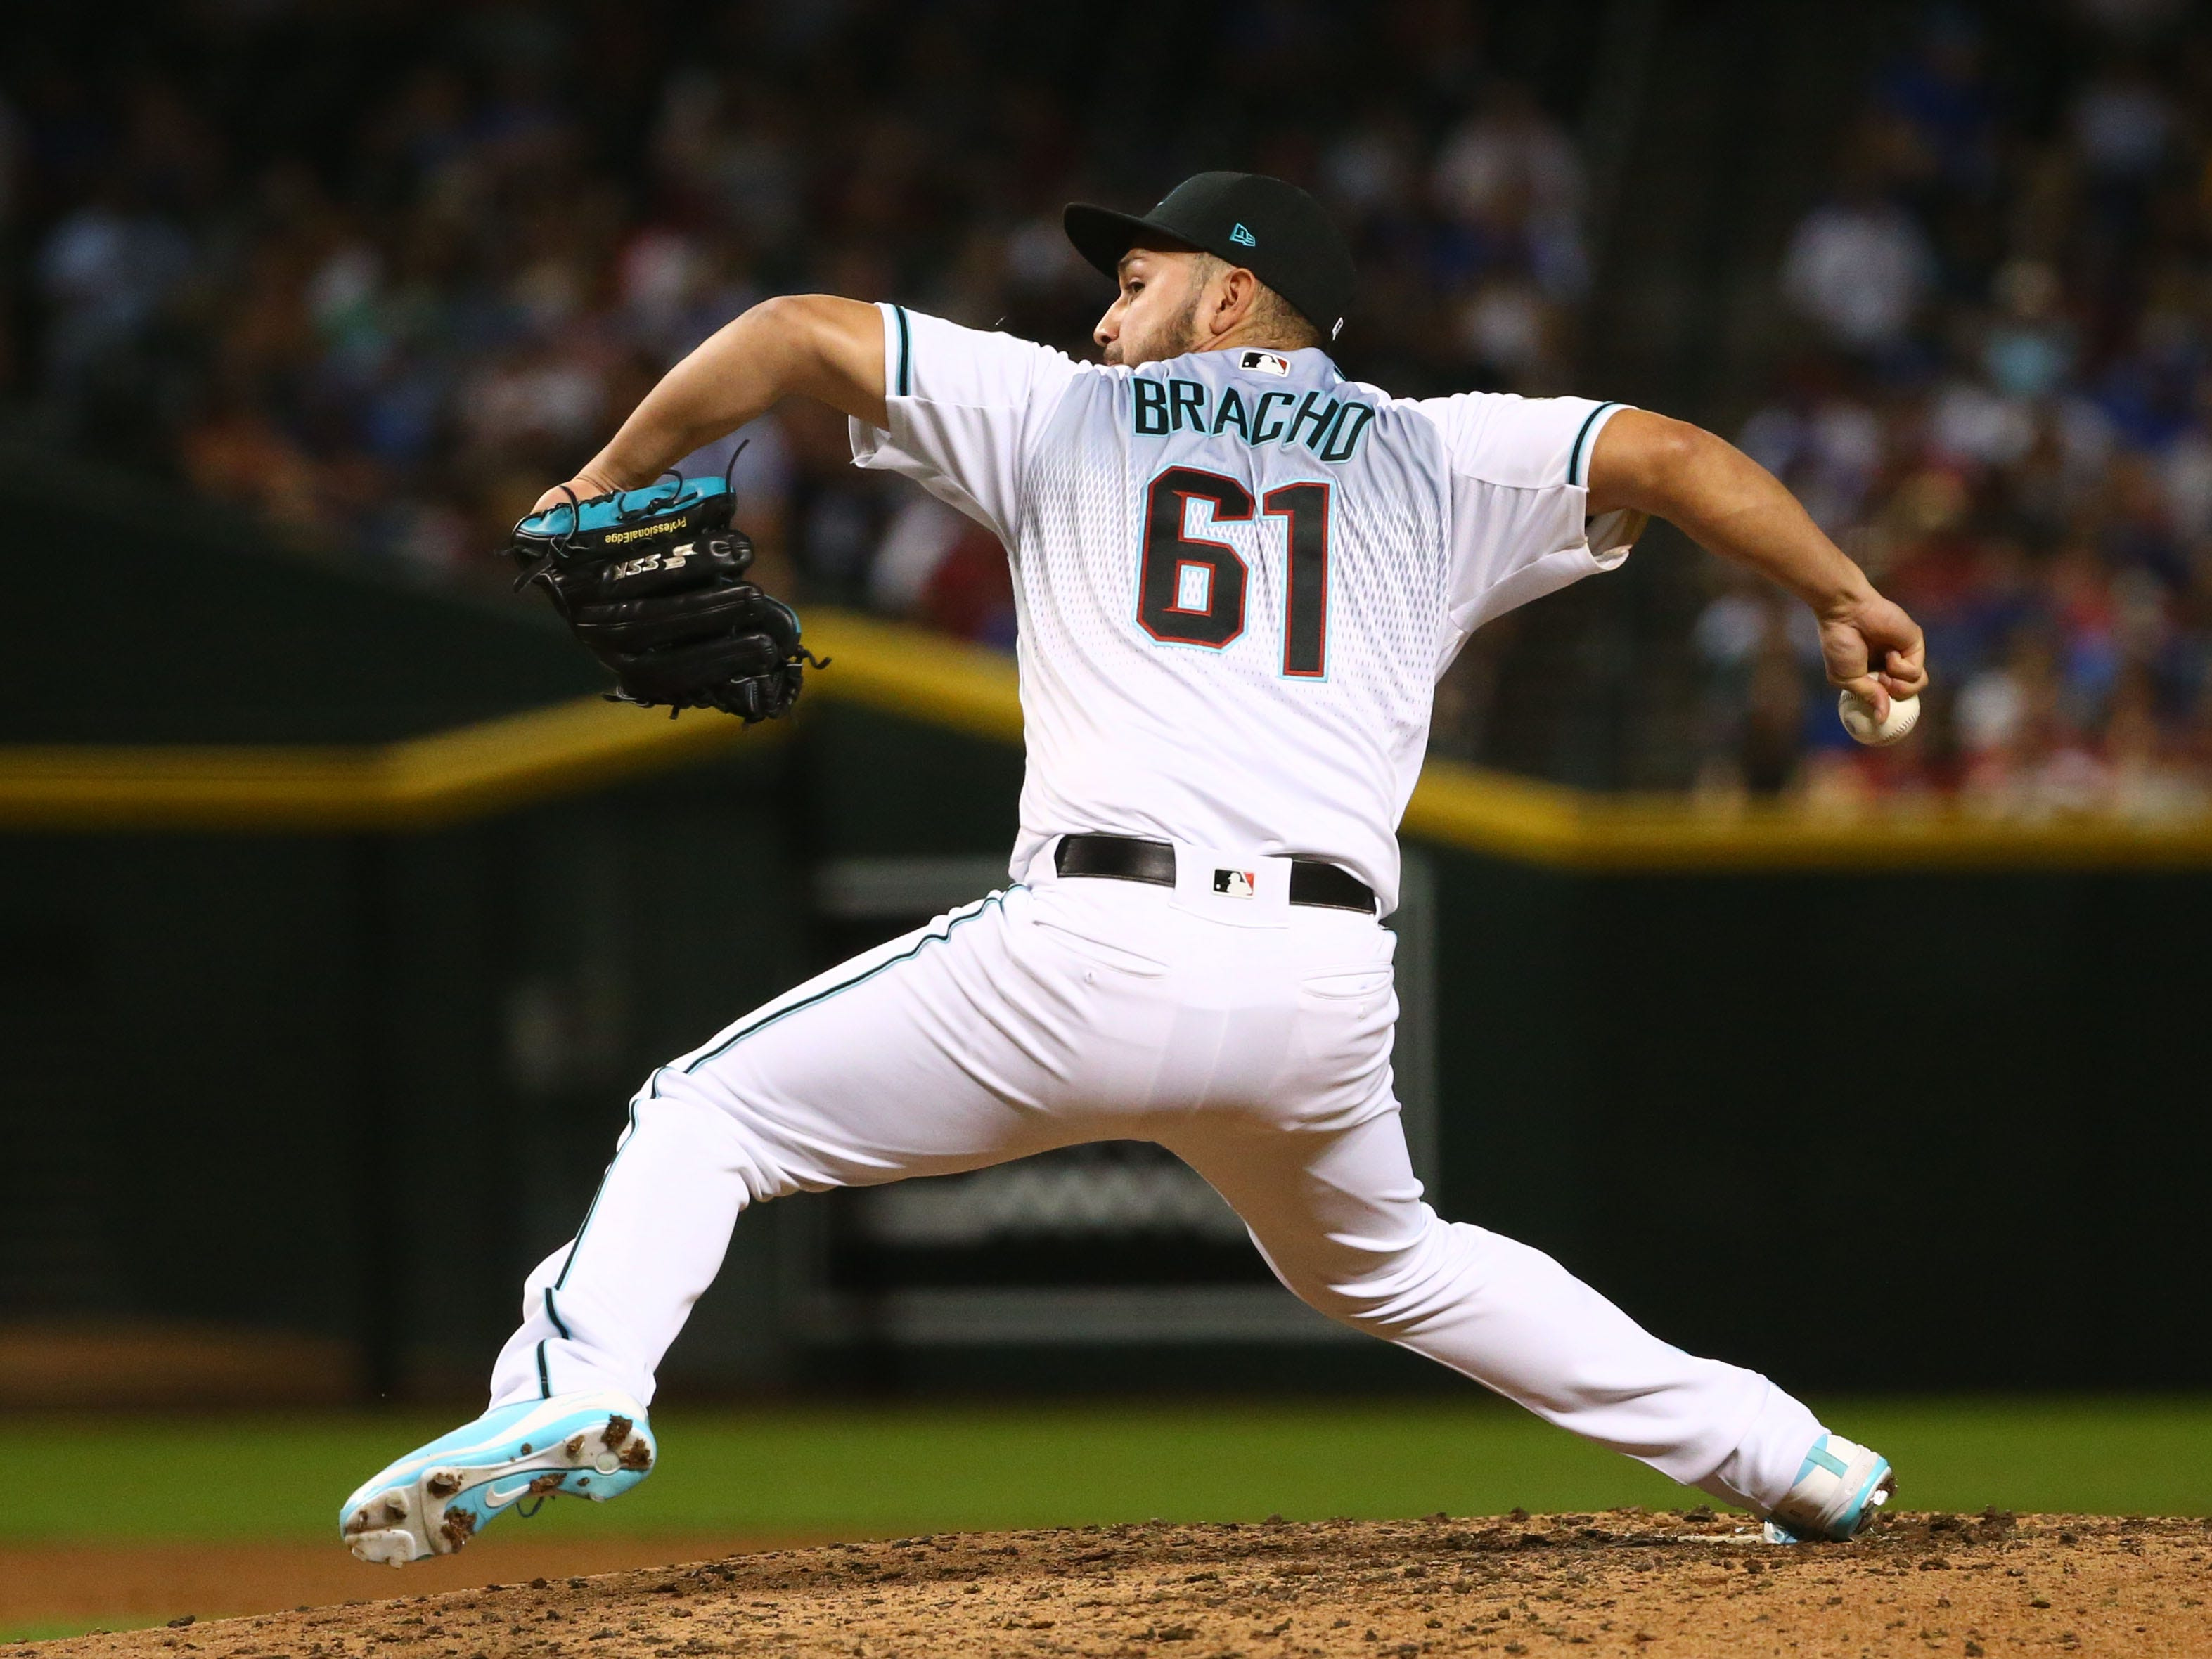 Arizona Diamondbacks pitcher Silvino Bracho throws to the Chicago Cubs in the fifth inning on Sep. 18, 2018, at Chase Field in Phoenix, Ariz.